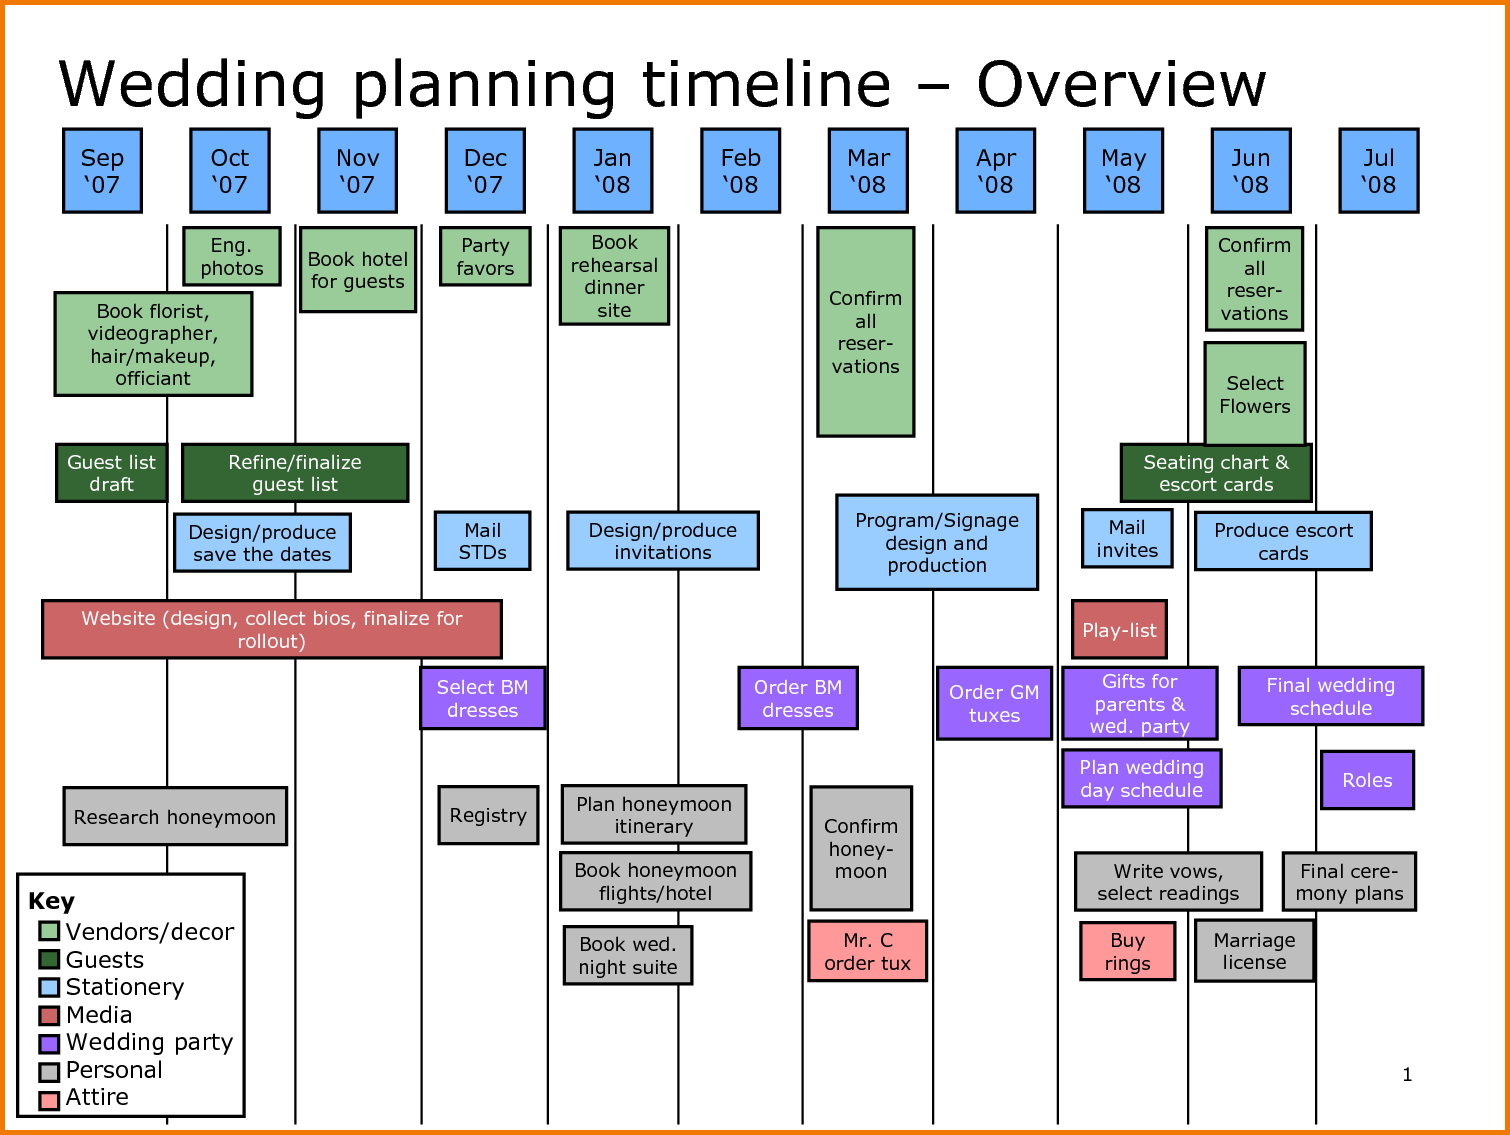 wedding planning timeline template | Expense Report